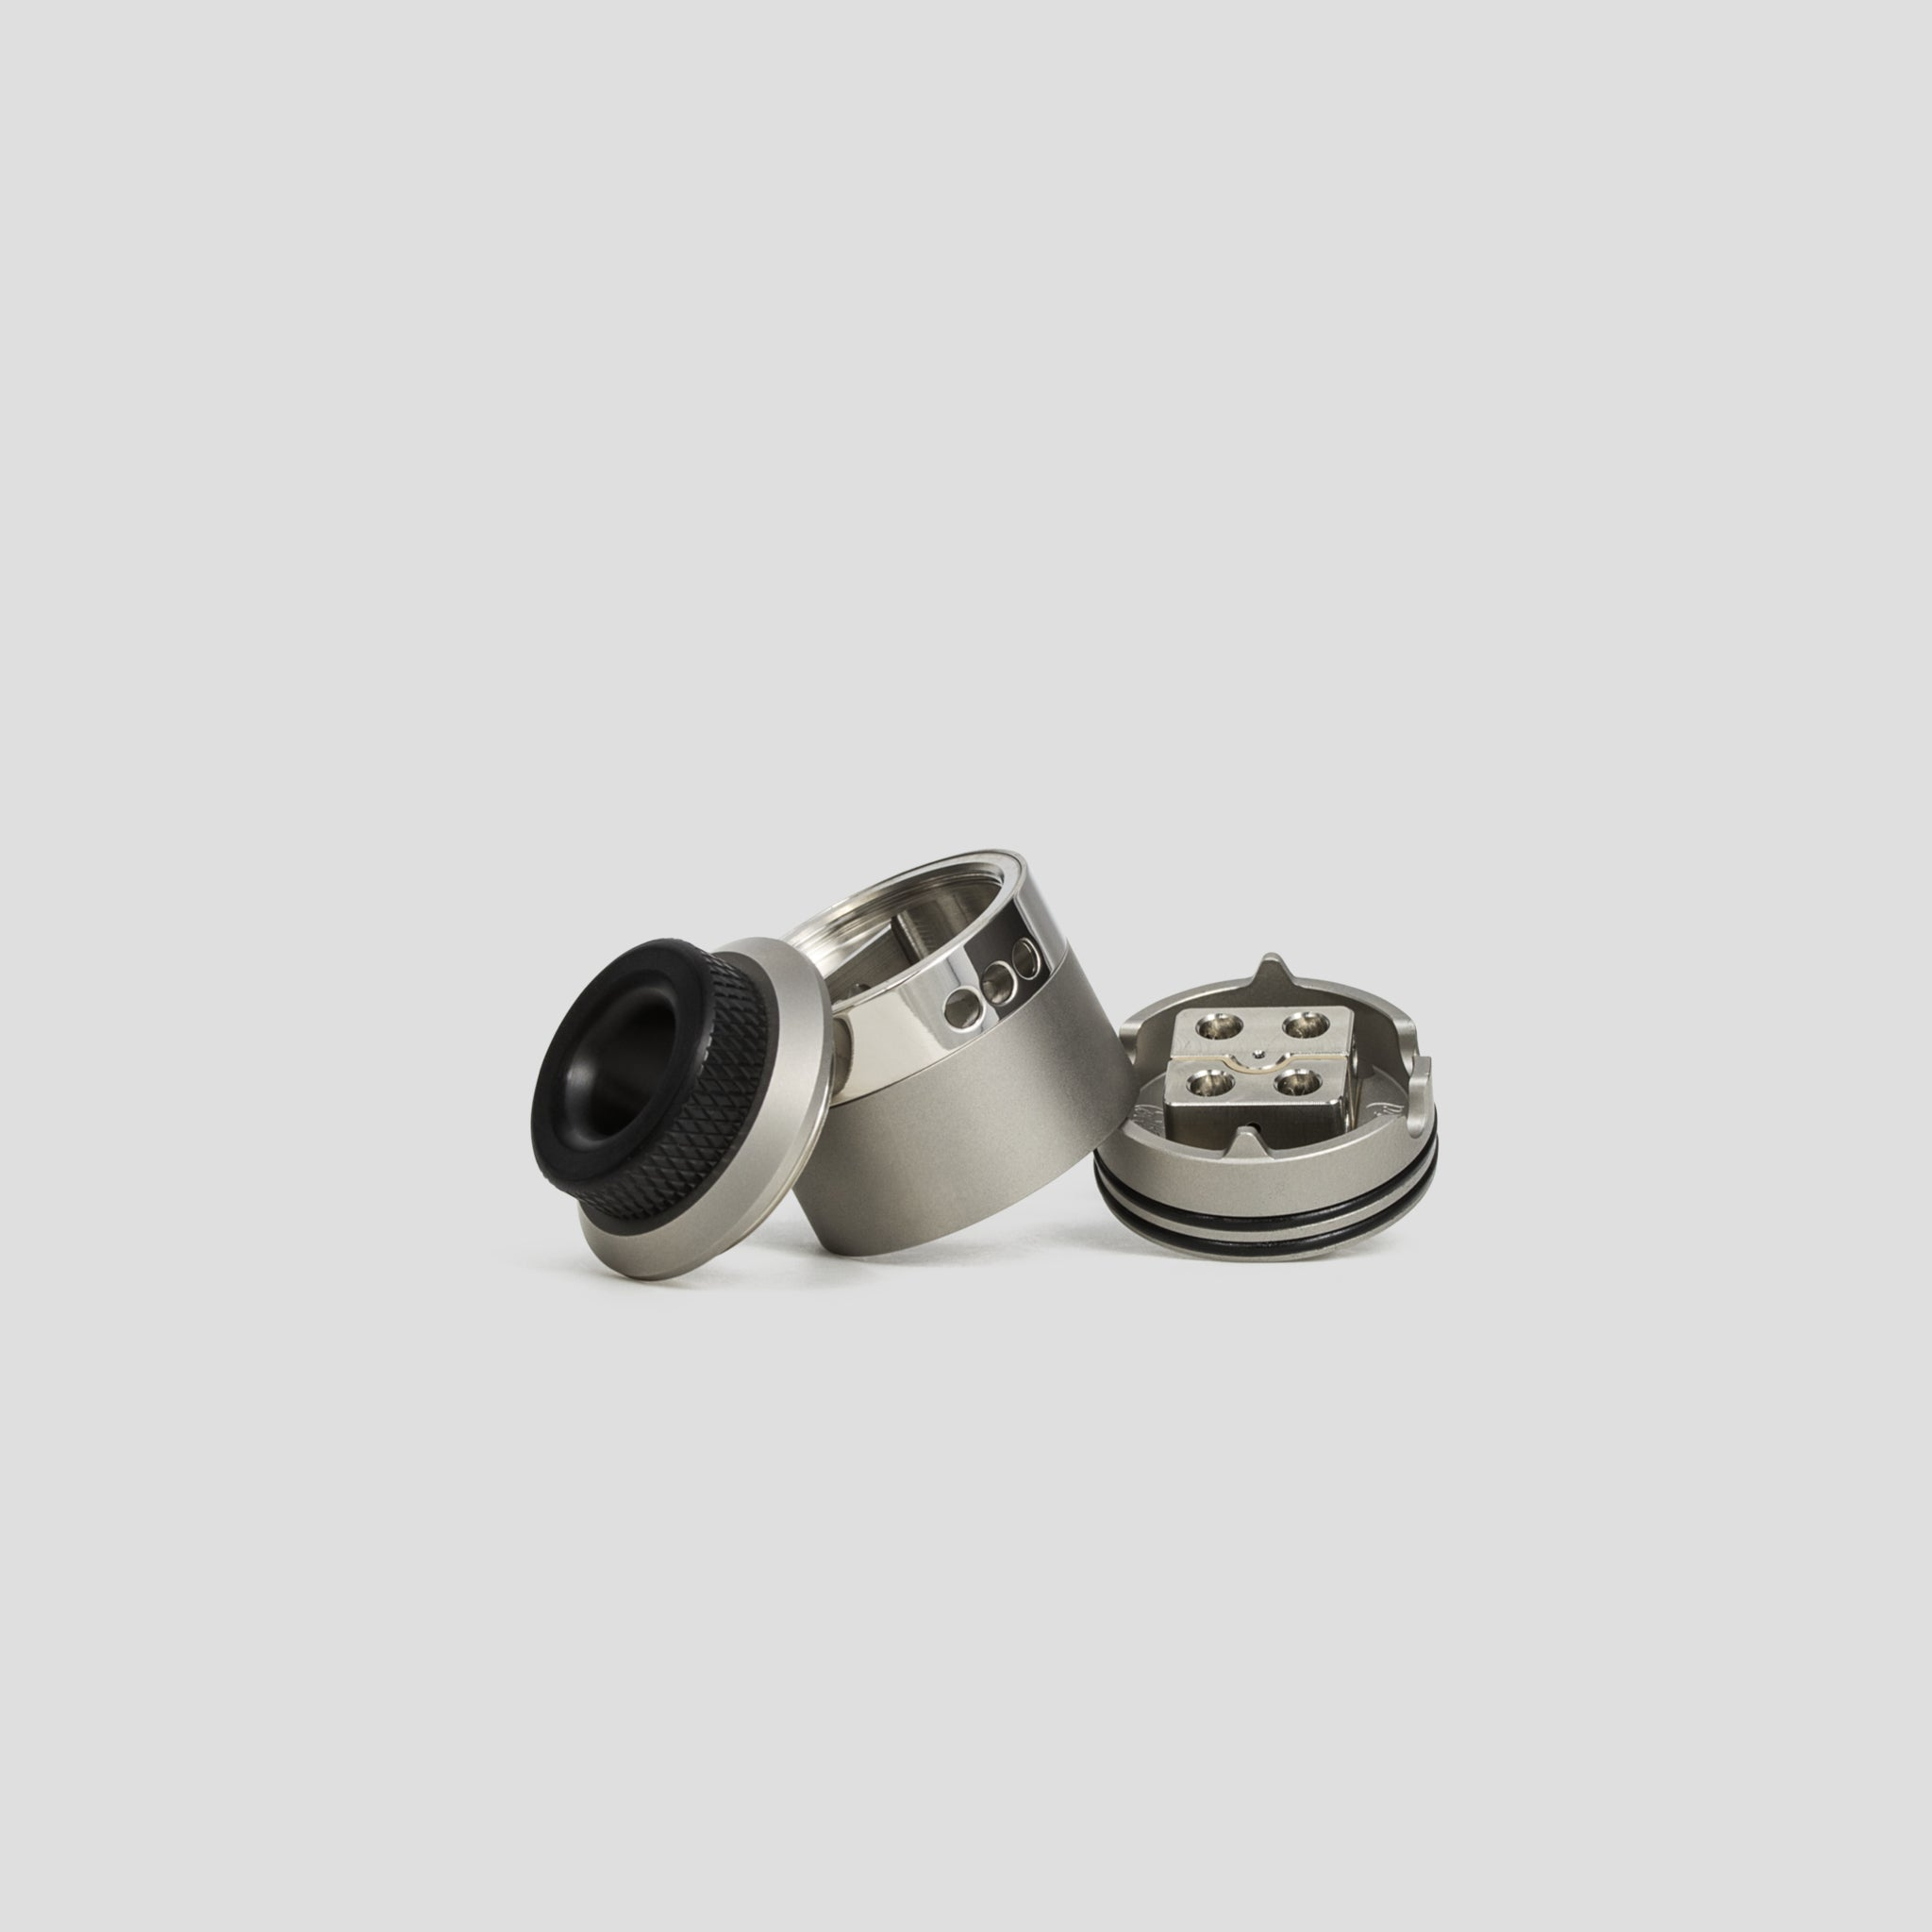 Coilturd An RDA for Vaping 24 RDA